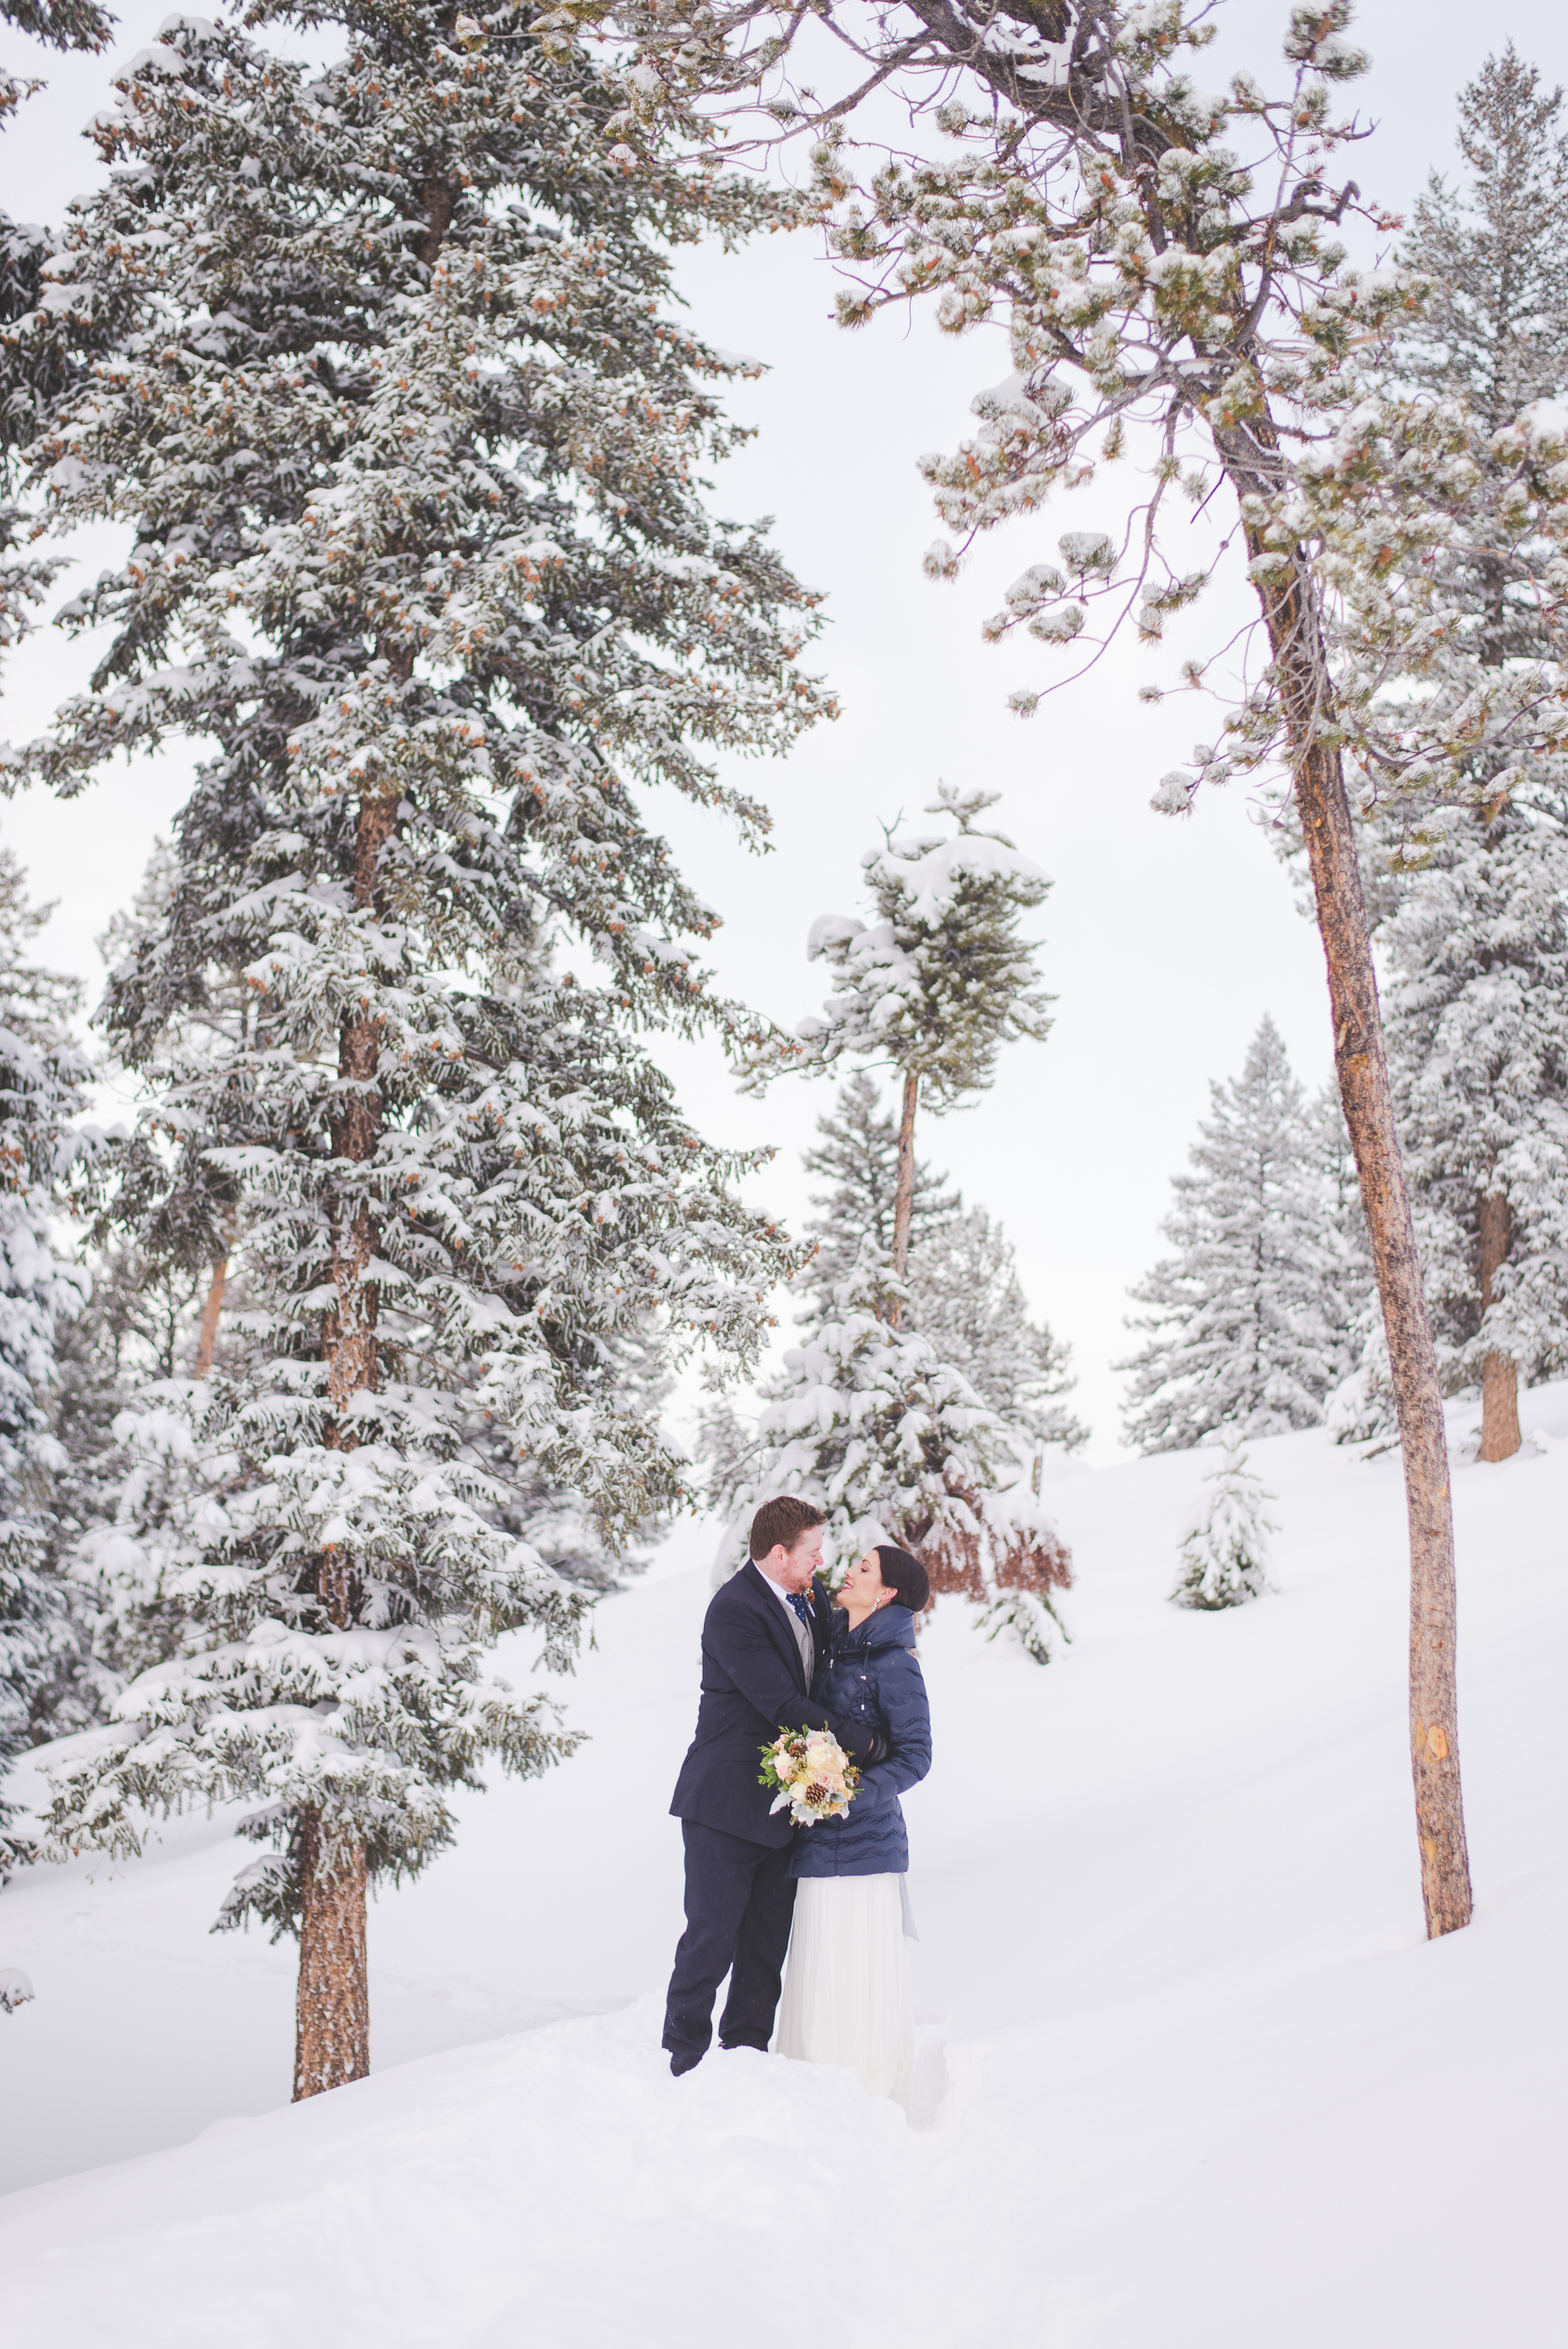 fresh snow (over a foot and a half!) decked the trees and the trail and created a magical wonderland for this destination elopement in breckenridge, colorado | photo by keeping composure photography